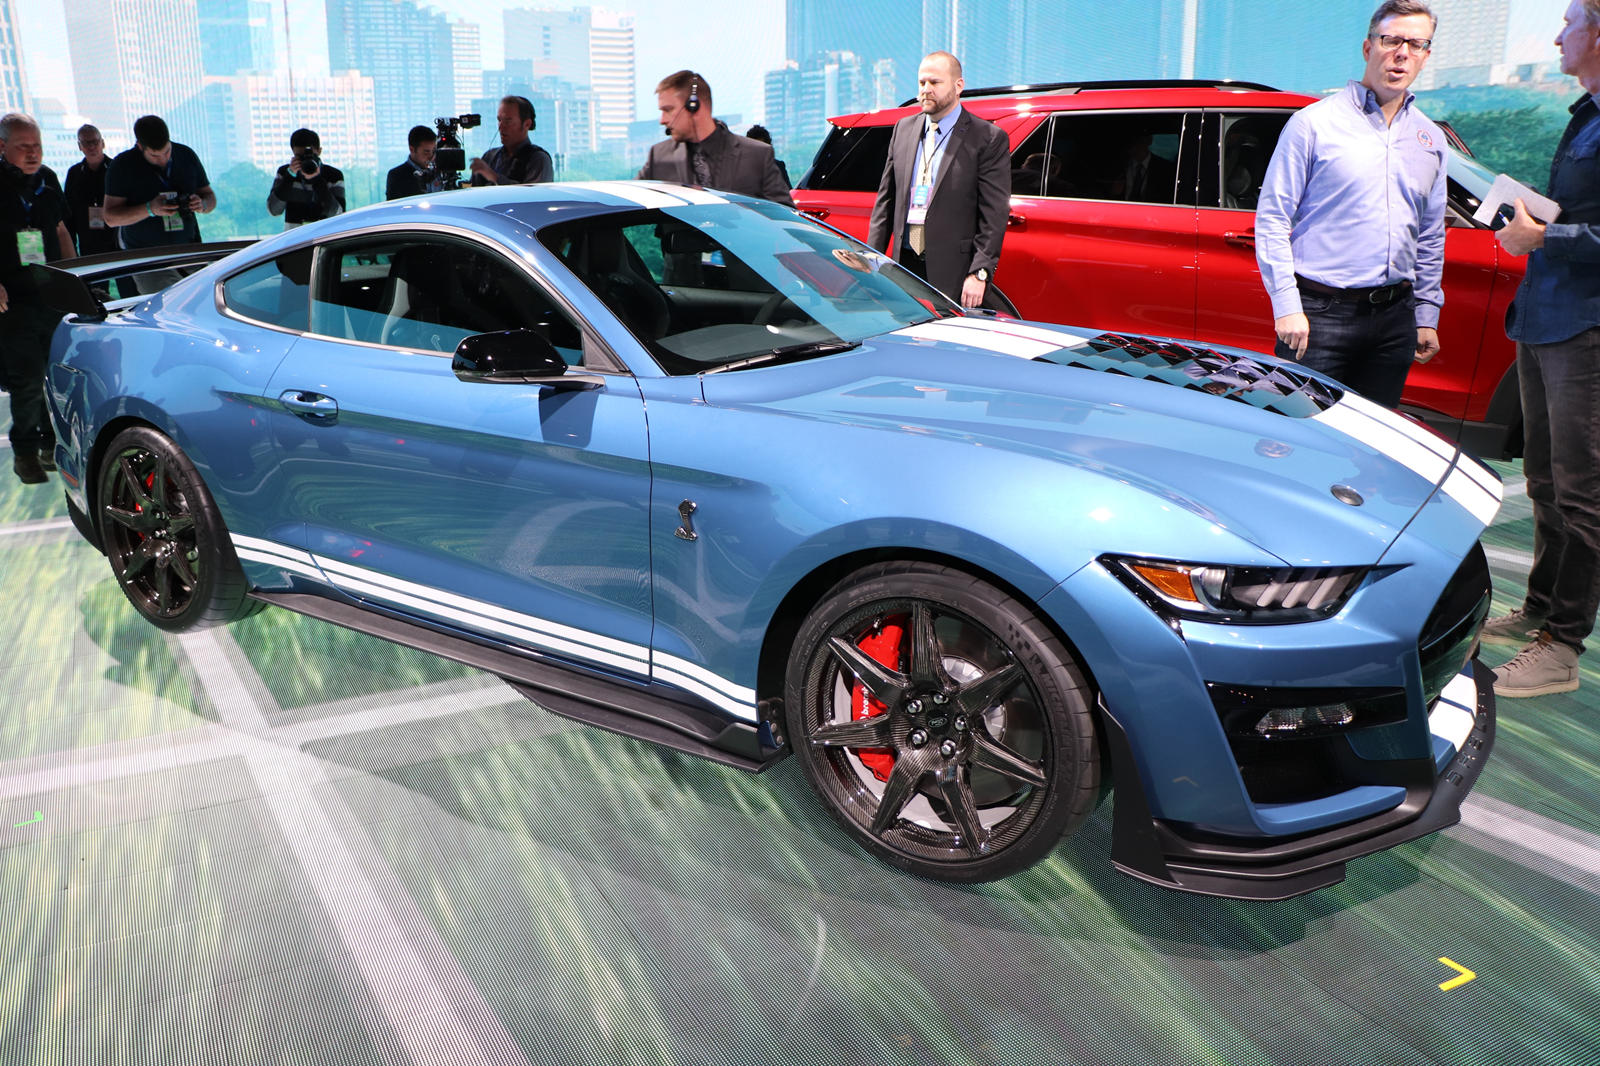 Meet The 2020 Shelby Gt500 The Most Powerful Mustang Ever Made